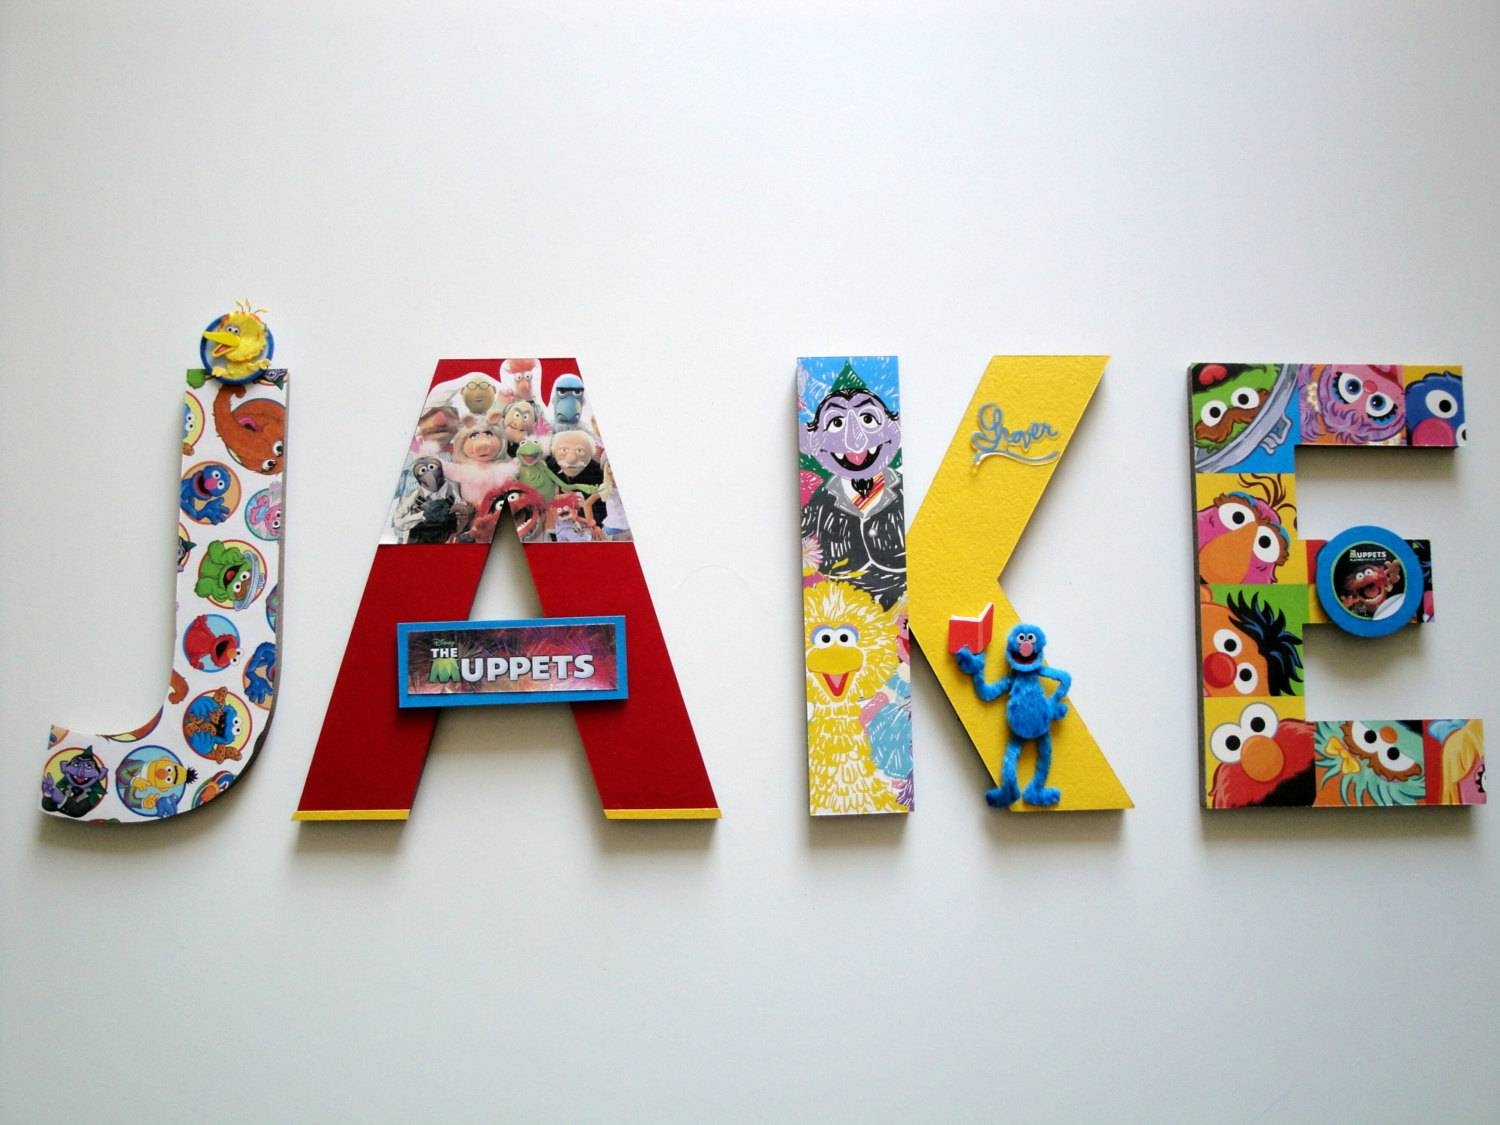 Playroom Wall Letters Playroom Wall Art Toys And Games Wall With Regard To Most Up To Date Wall Art For Playroom (View 23 of 30)